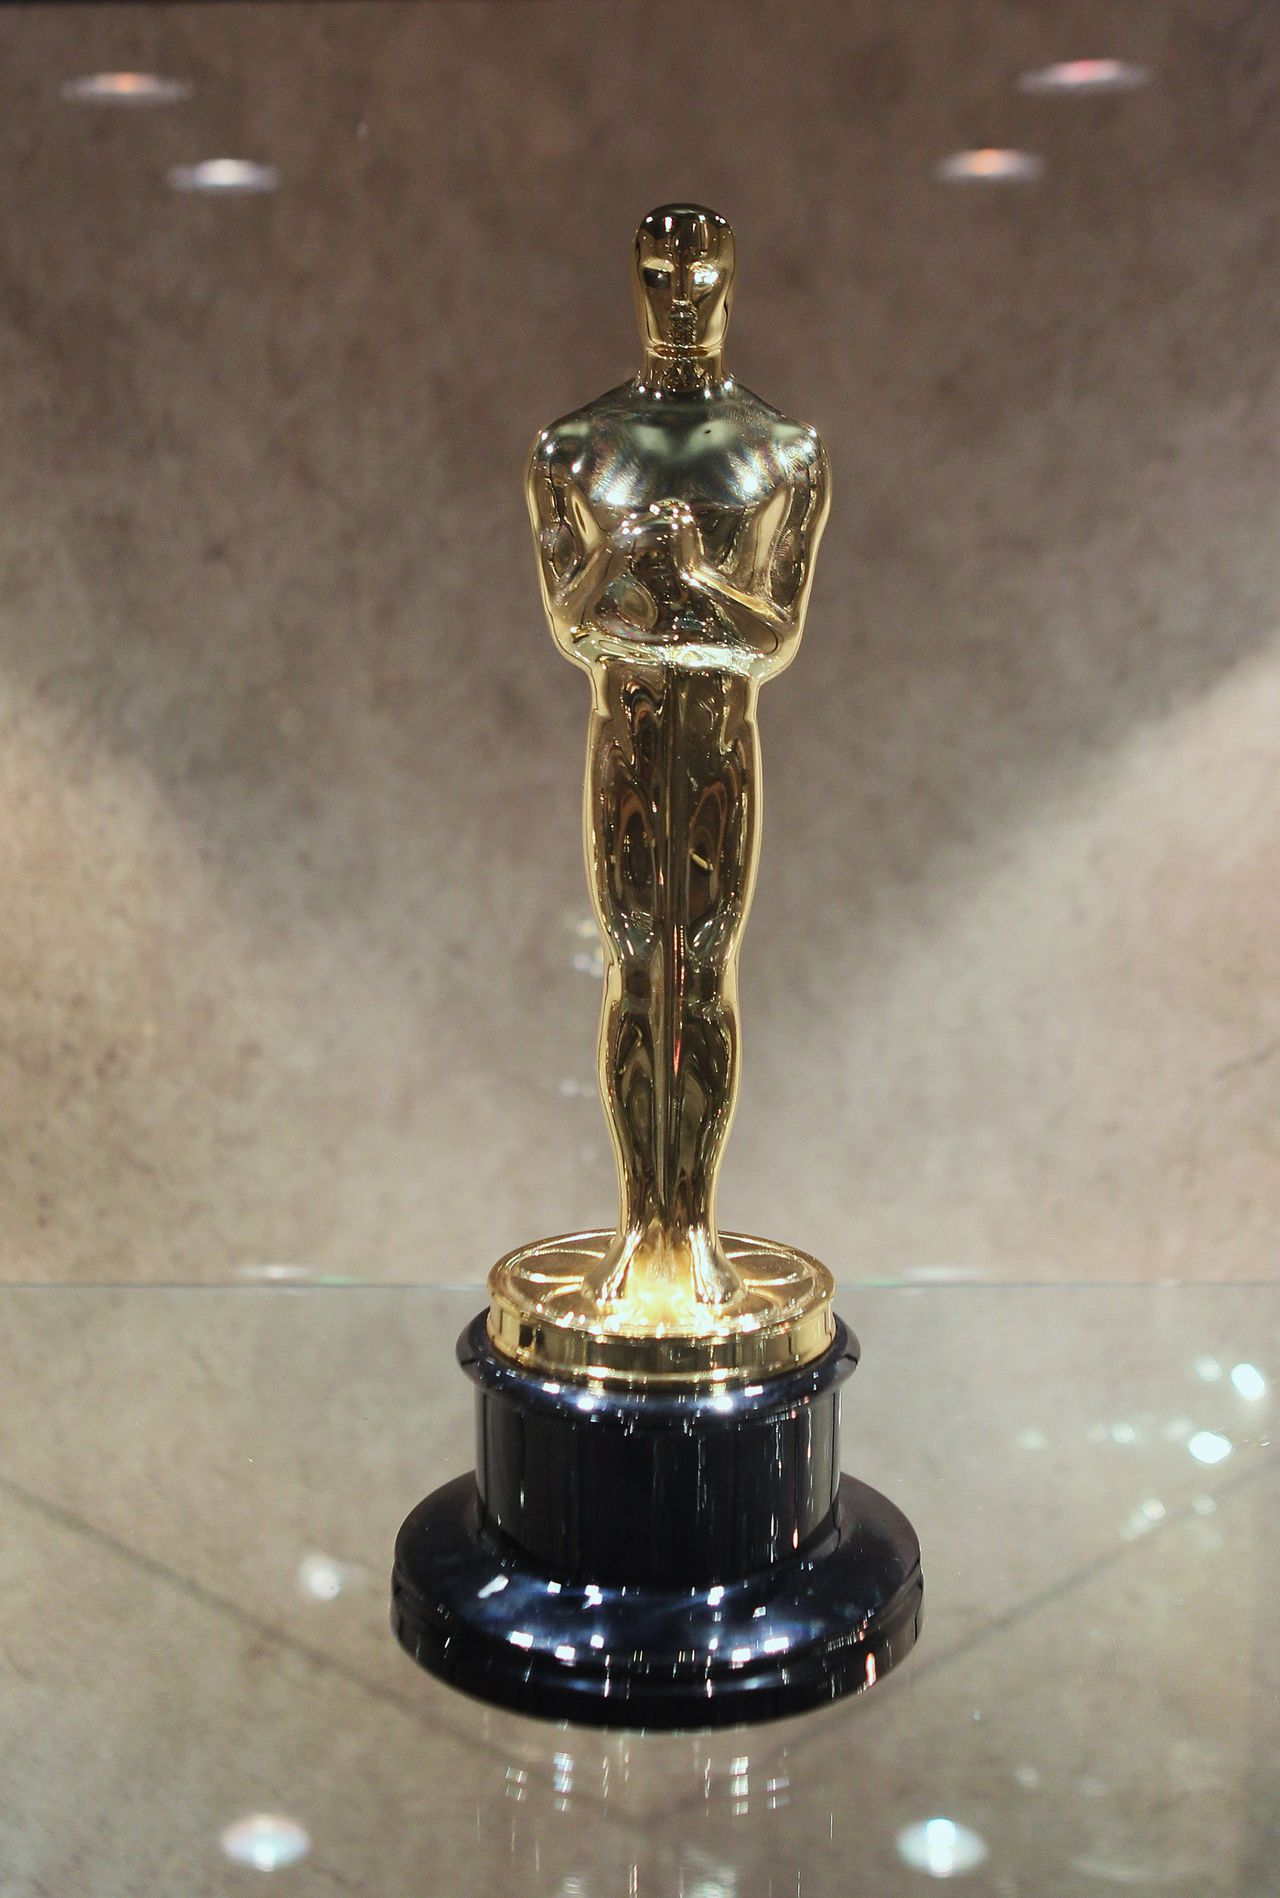 CHICAGO, IL - FEBRUARY 09: An Oscar statuette sits in a display case at R.S. Owens & Company February 9, 2012 in Chicago, Illinois. R.S. Owens manufactures the Oscar statuettes which are presented at the annual Academy Awards by the Academy of Motion Picture Arts and Sciences. After the theft of the statuettes prior to the 2000 Academy Awards the company began casting the statuettes one year in advance of the show. Scott Olson/Getty Images/AFP == FOR NEWSPAPERS, INTERNET, TELCOS & TELEVISION USE ONLY ==